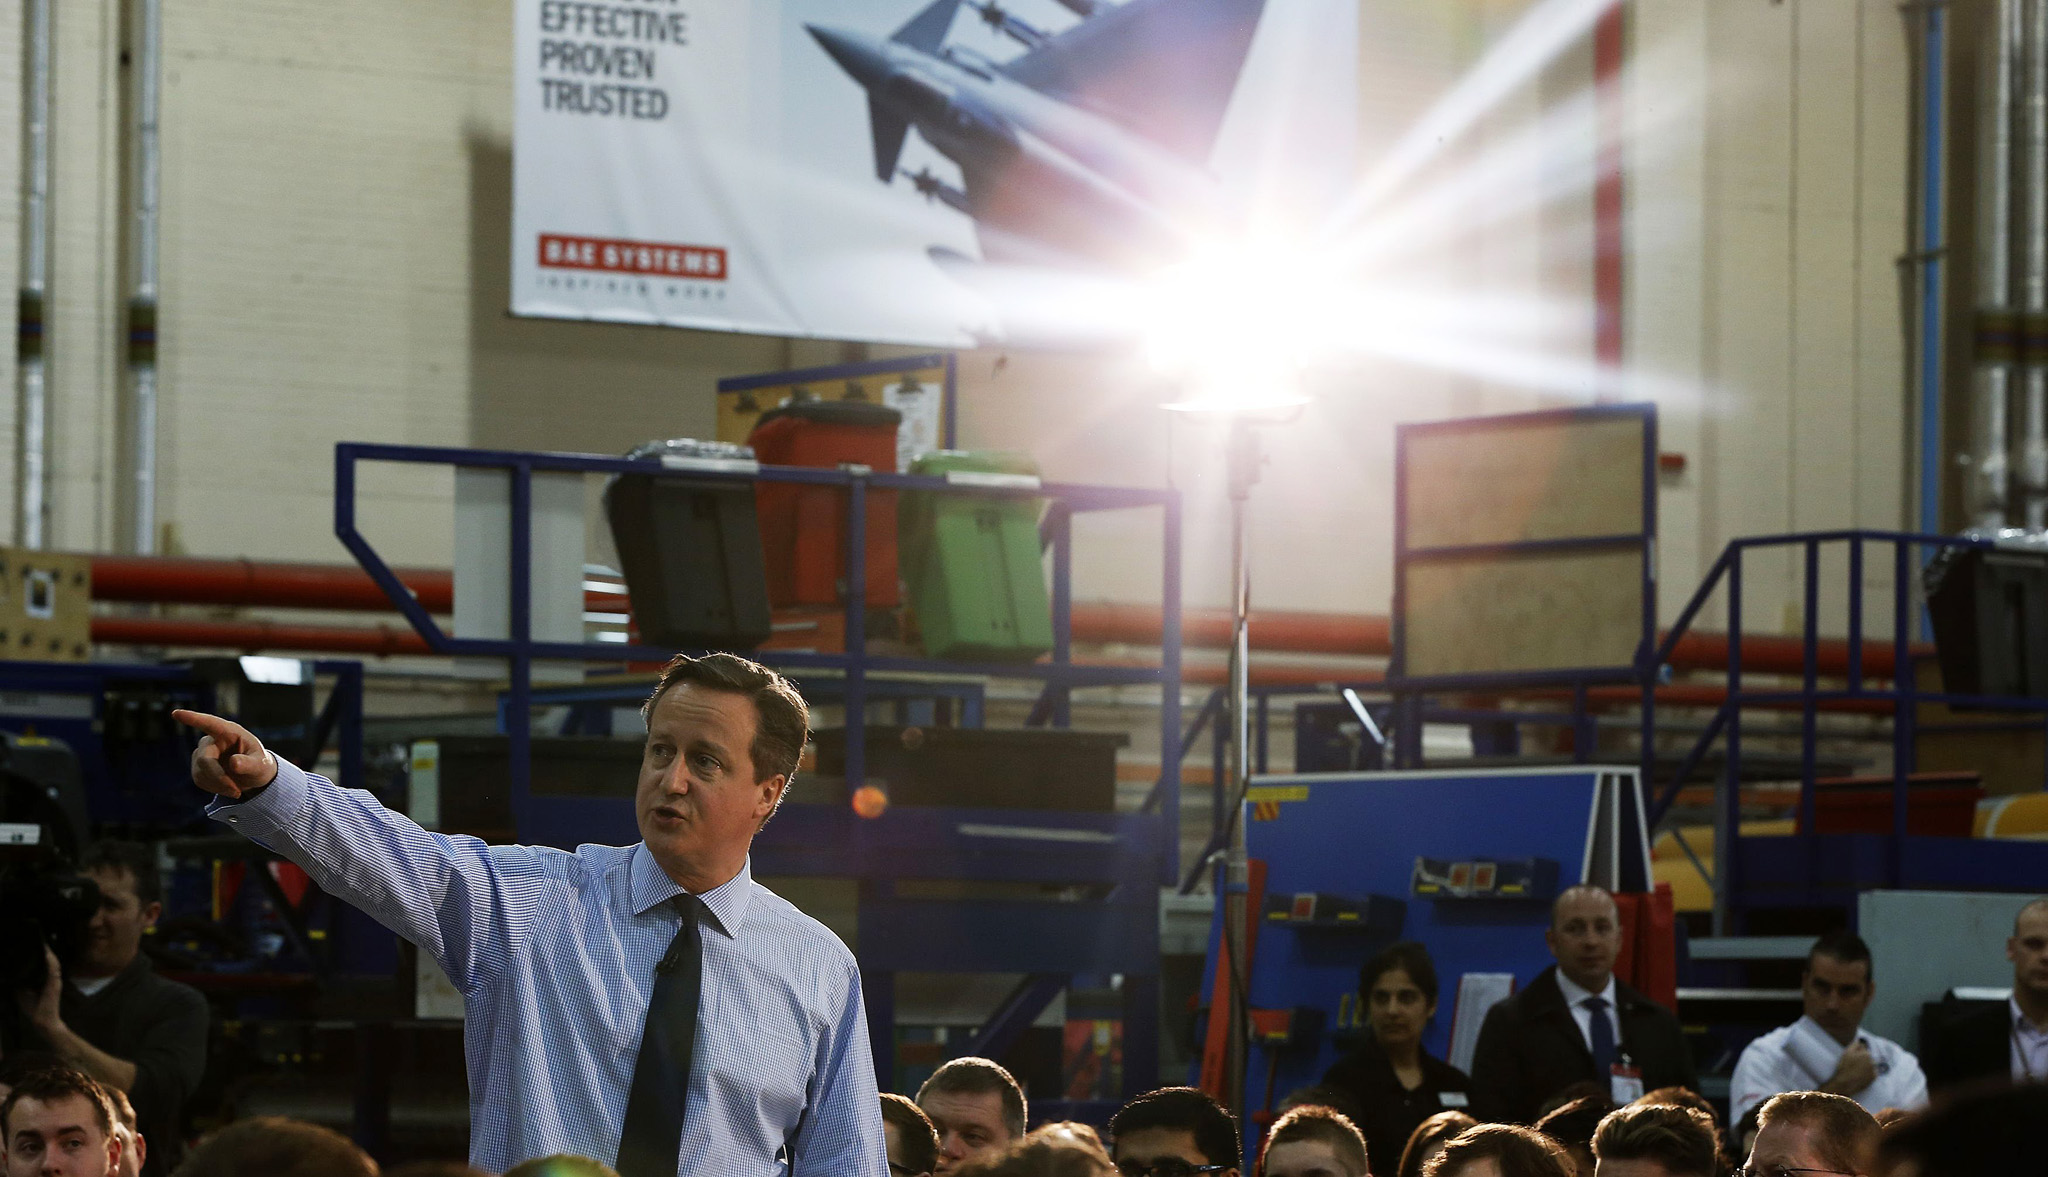 Britain's Prime Minister David Cameron speaks with a worker as he views a military aircraft during his visit to BAE Systems in Preston...Britain's Prime Minister David Cameron (L) speaks with worker Sam Barrett as he views a military aircraft during his visit to BAE Systems, in Preston, northern England March 12, 2015. REUTERS/Lynne Cameron/pool   (BRITAIN - Tags: POLITICS MILITARY BUSINESS EMPLOYMENT)